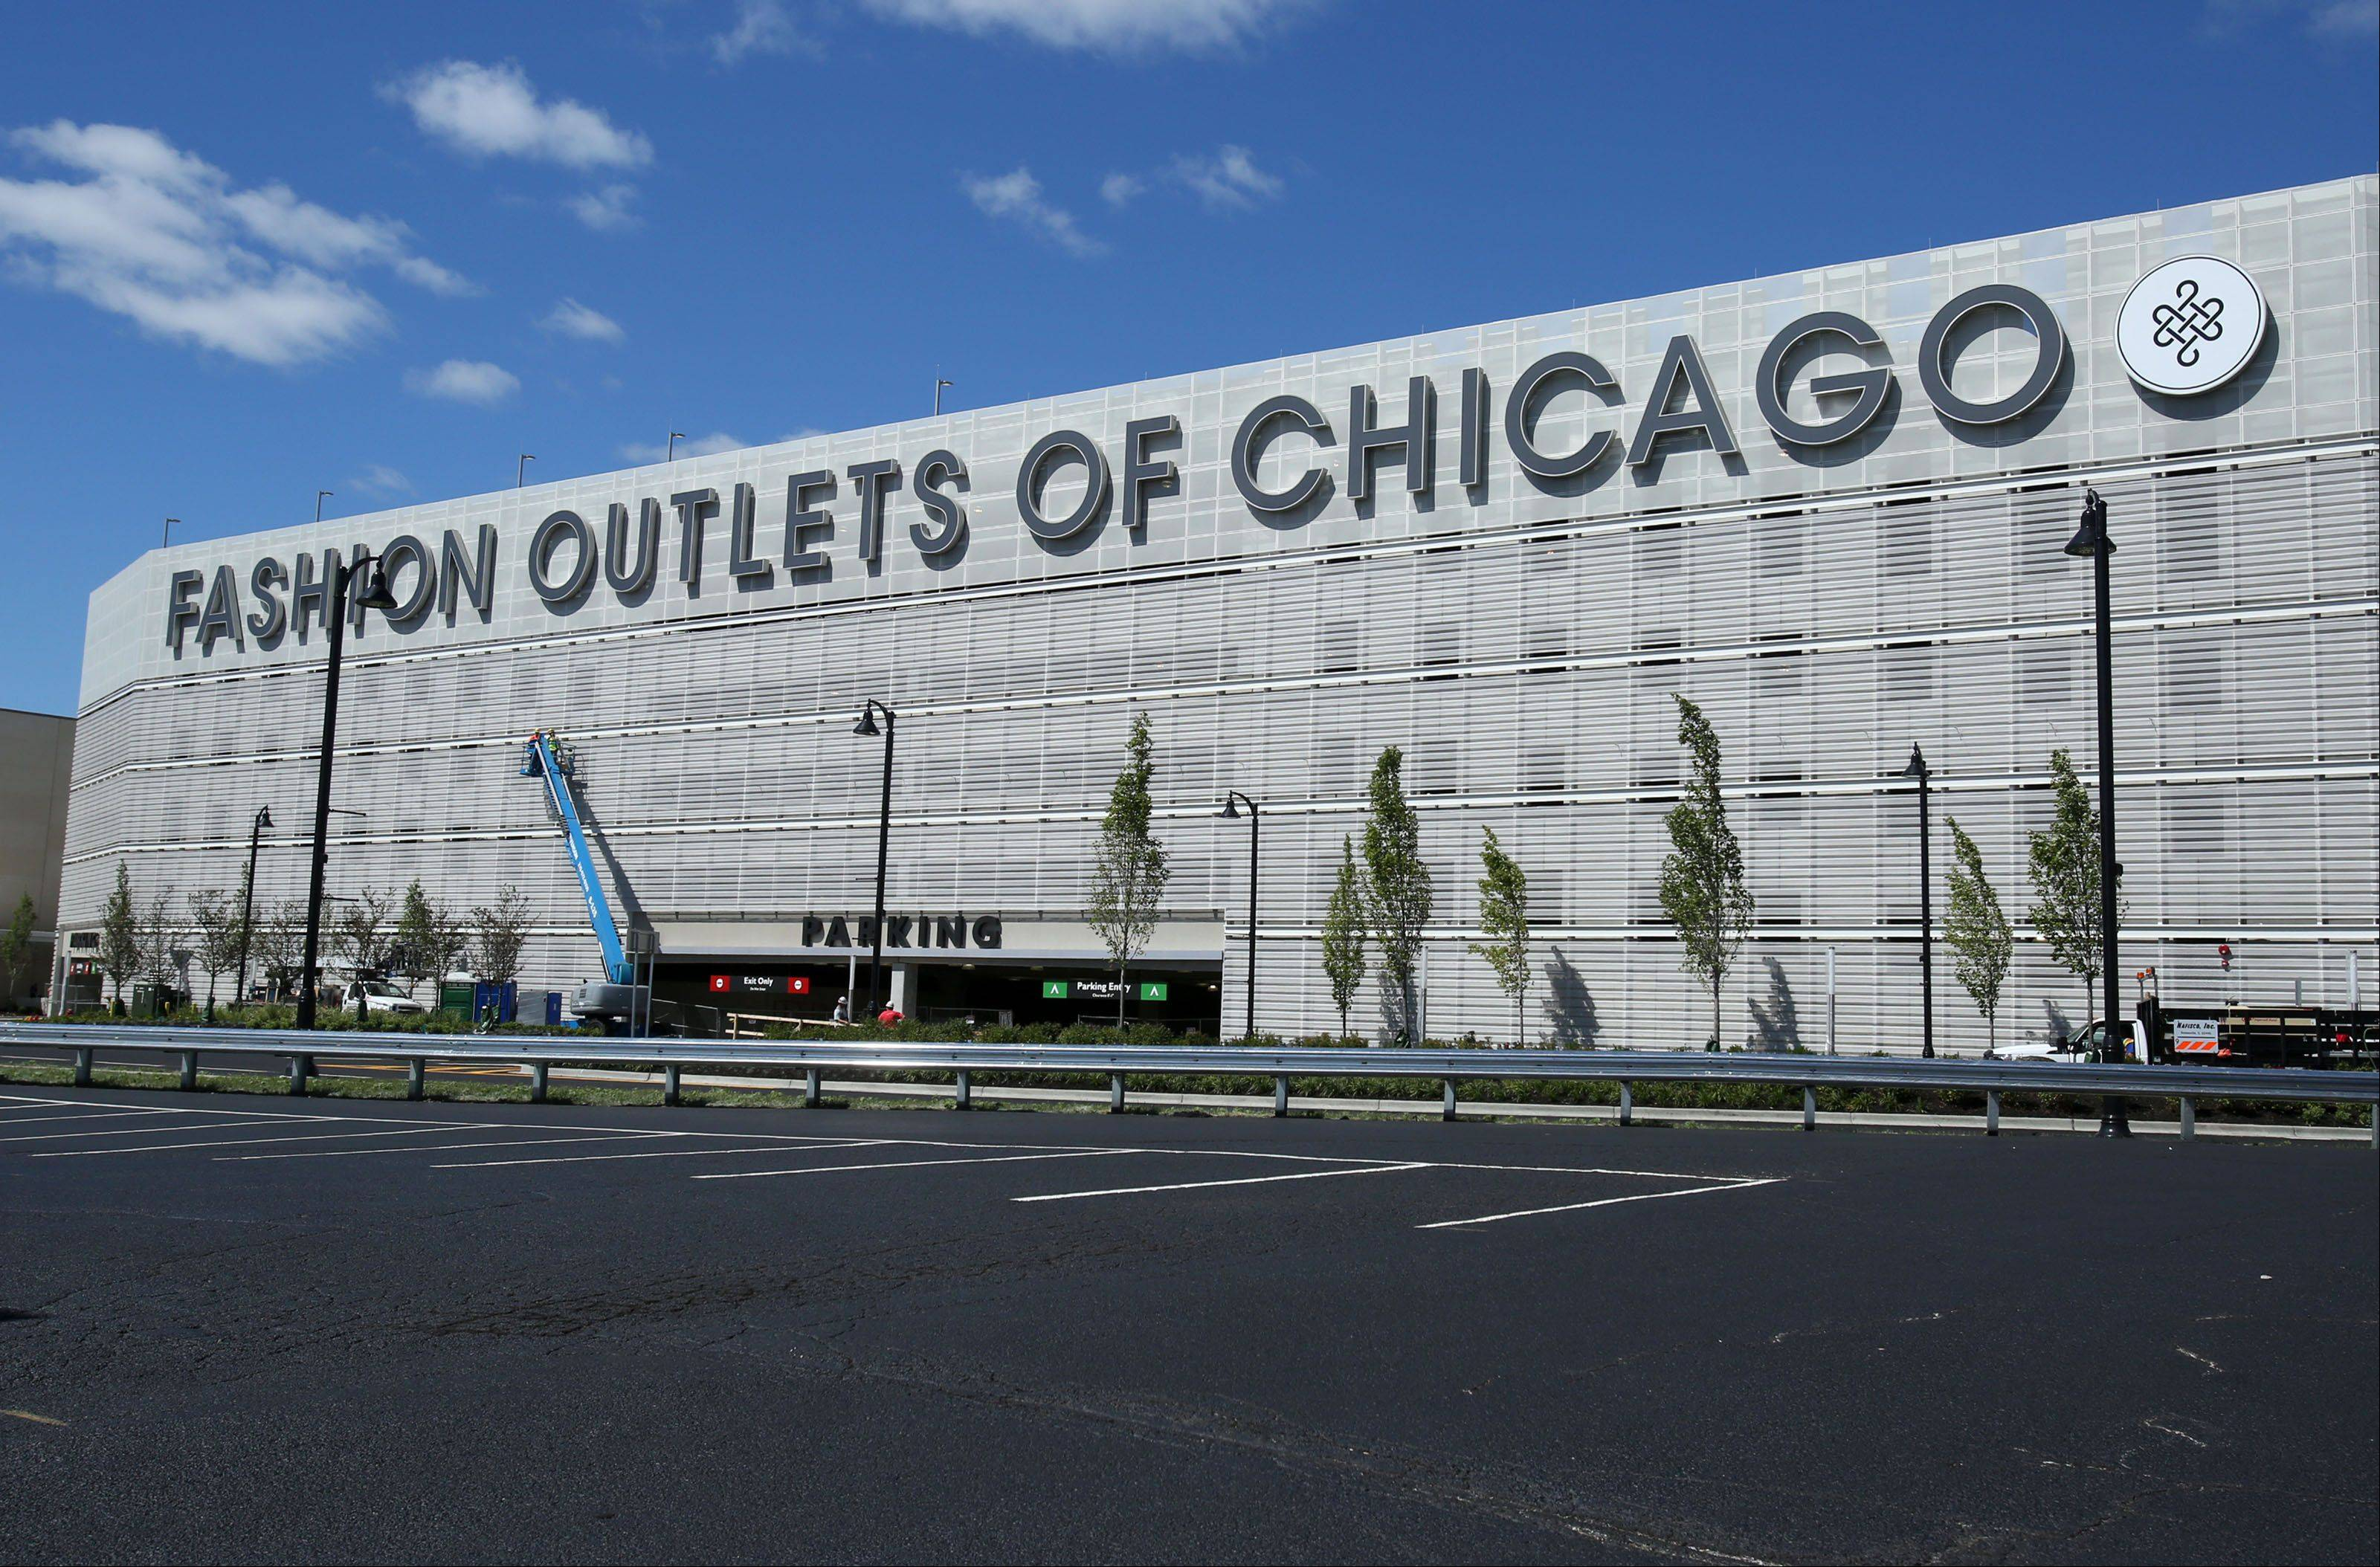 Oct 02, · Chicago Premium Outlets is more than just a great collection of the finest designer labels and brands, it's Chicagoland's newest shopping destination. Include a shopping stop during your next trip to Chicago.4/4().